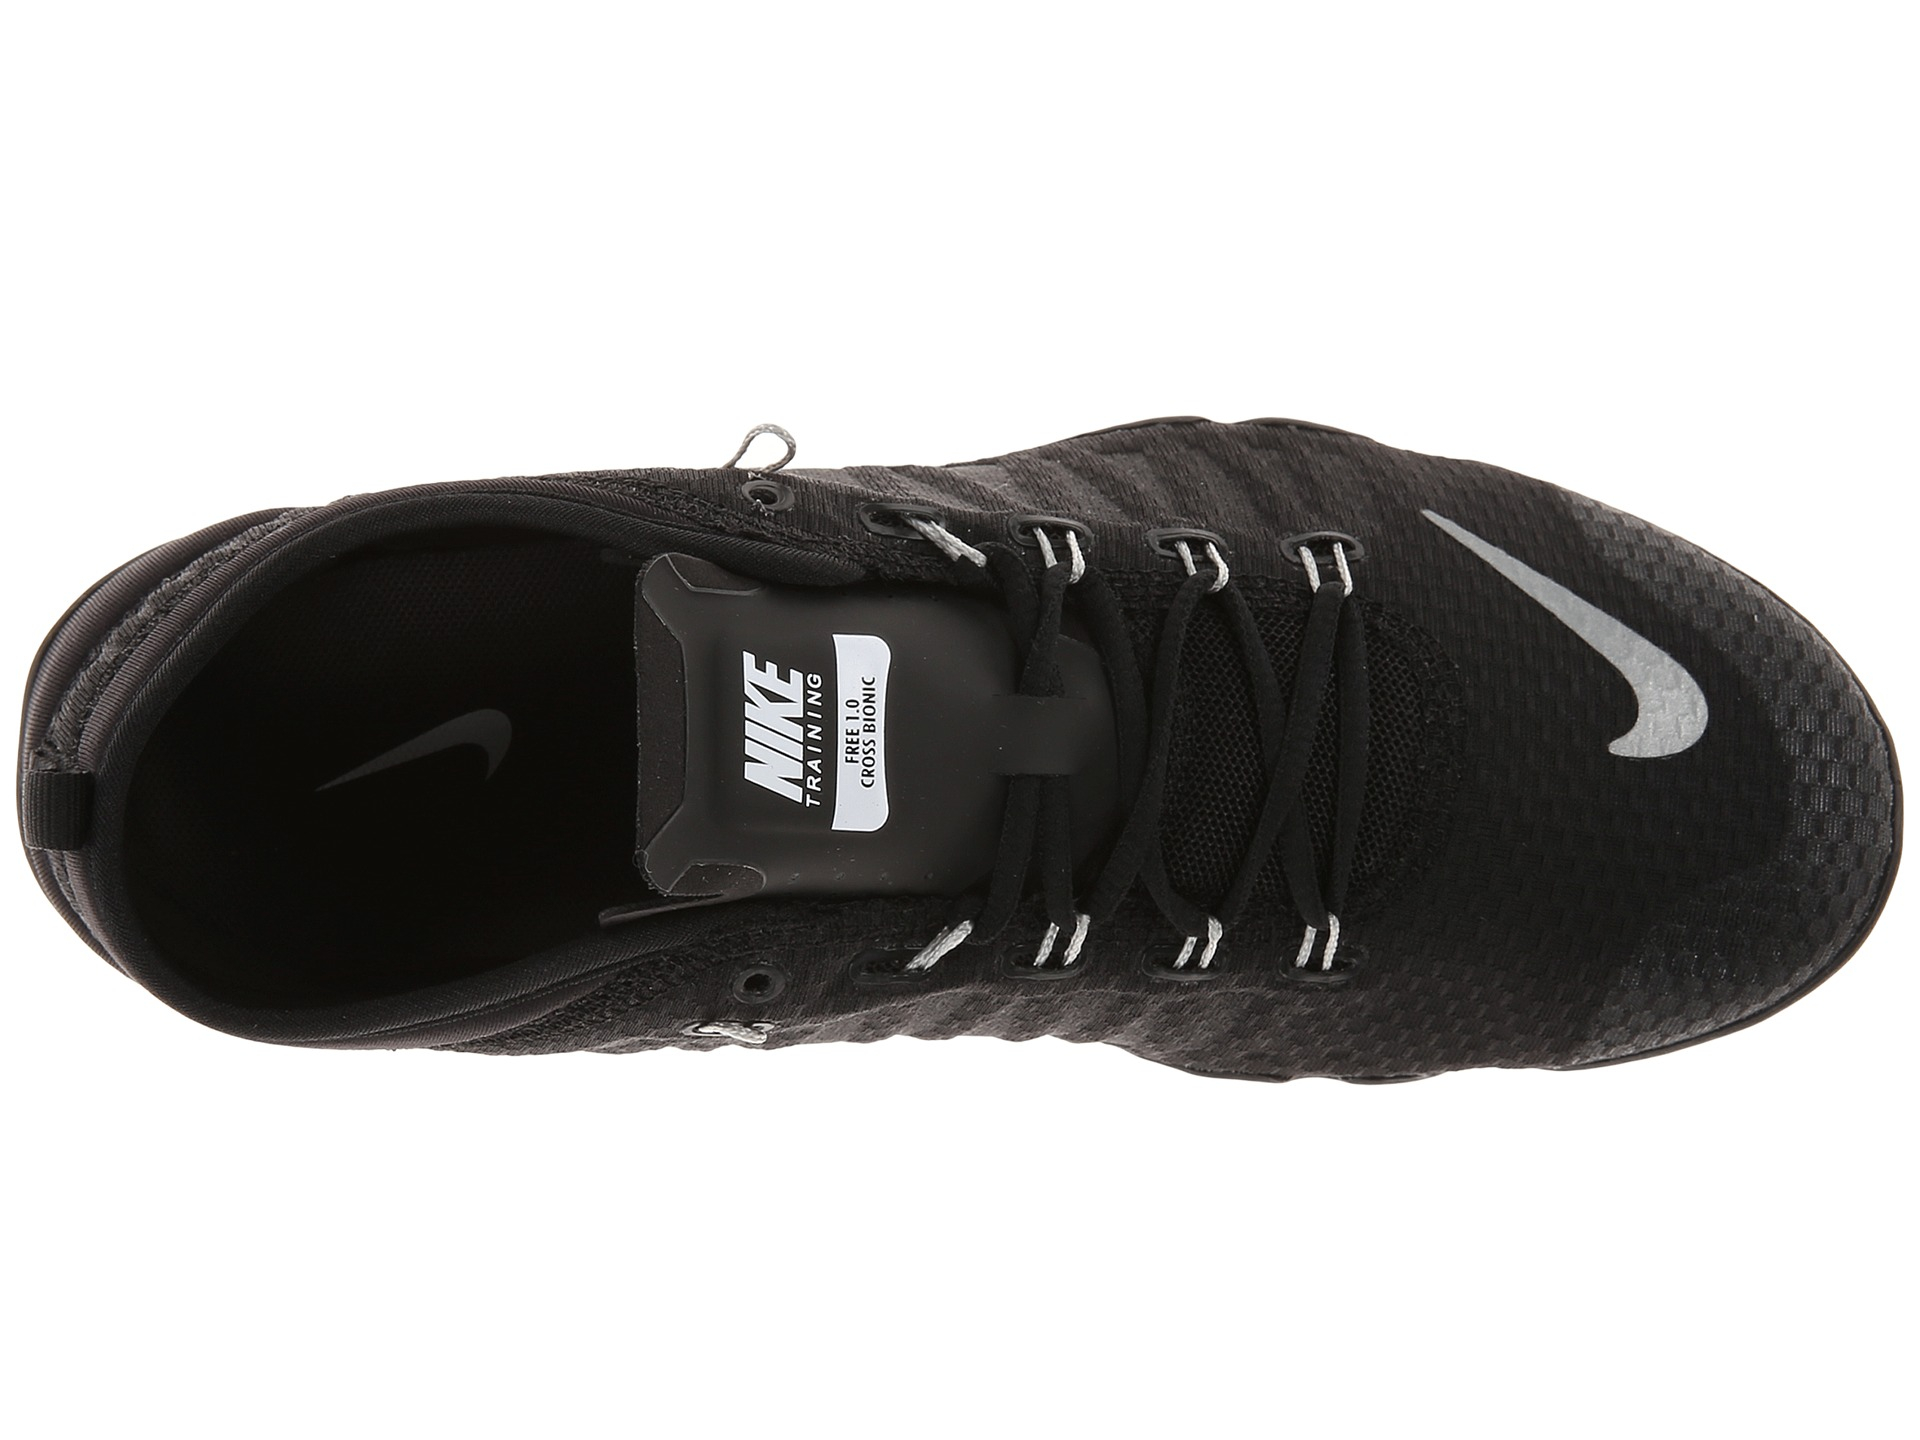 9390c49bc49a Previously sold at Zappos · Men s Nike Free Nike Free Trainer 1.0 Bionic ...